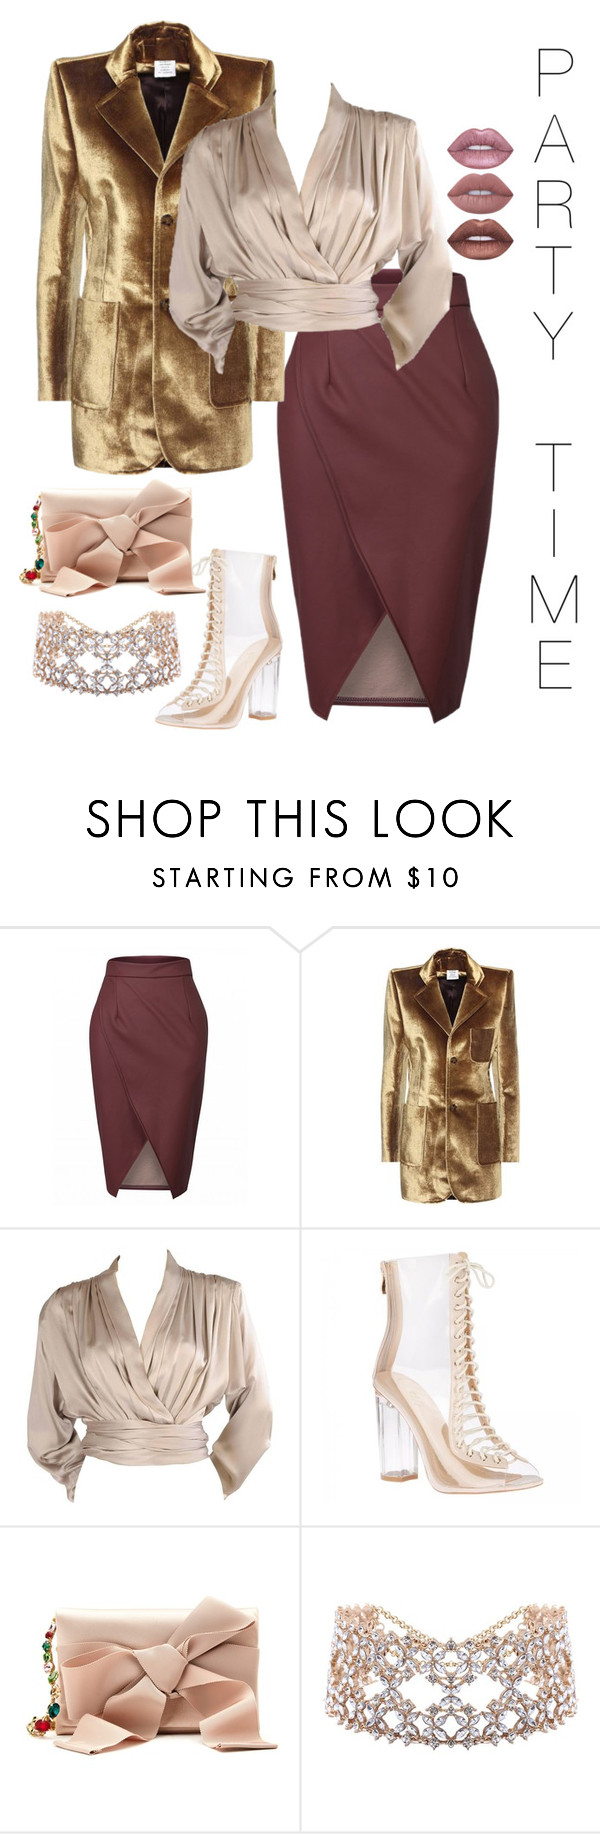 """Party time"" by audrianaj ❤ liked on Polyvore featuring Vetements, Yves Saint Laurent, Oscar de la Renta, Lime Crime, NewYears and party"